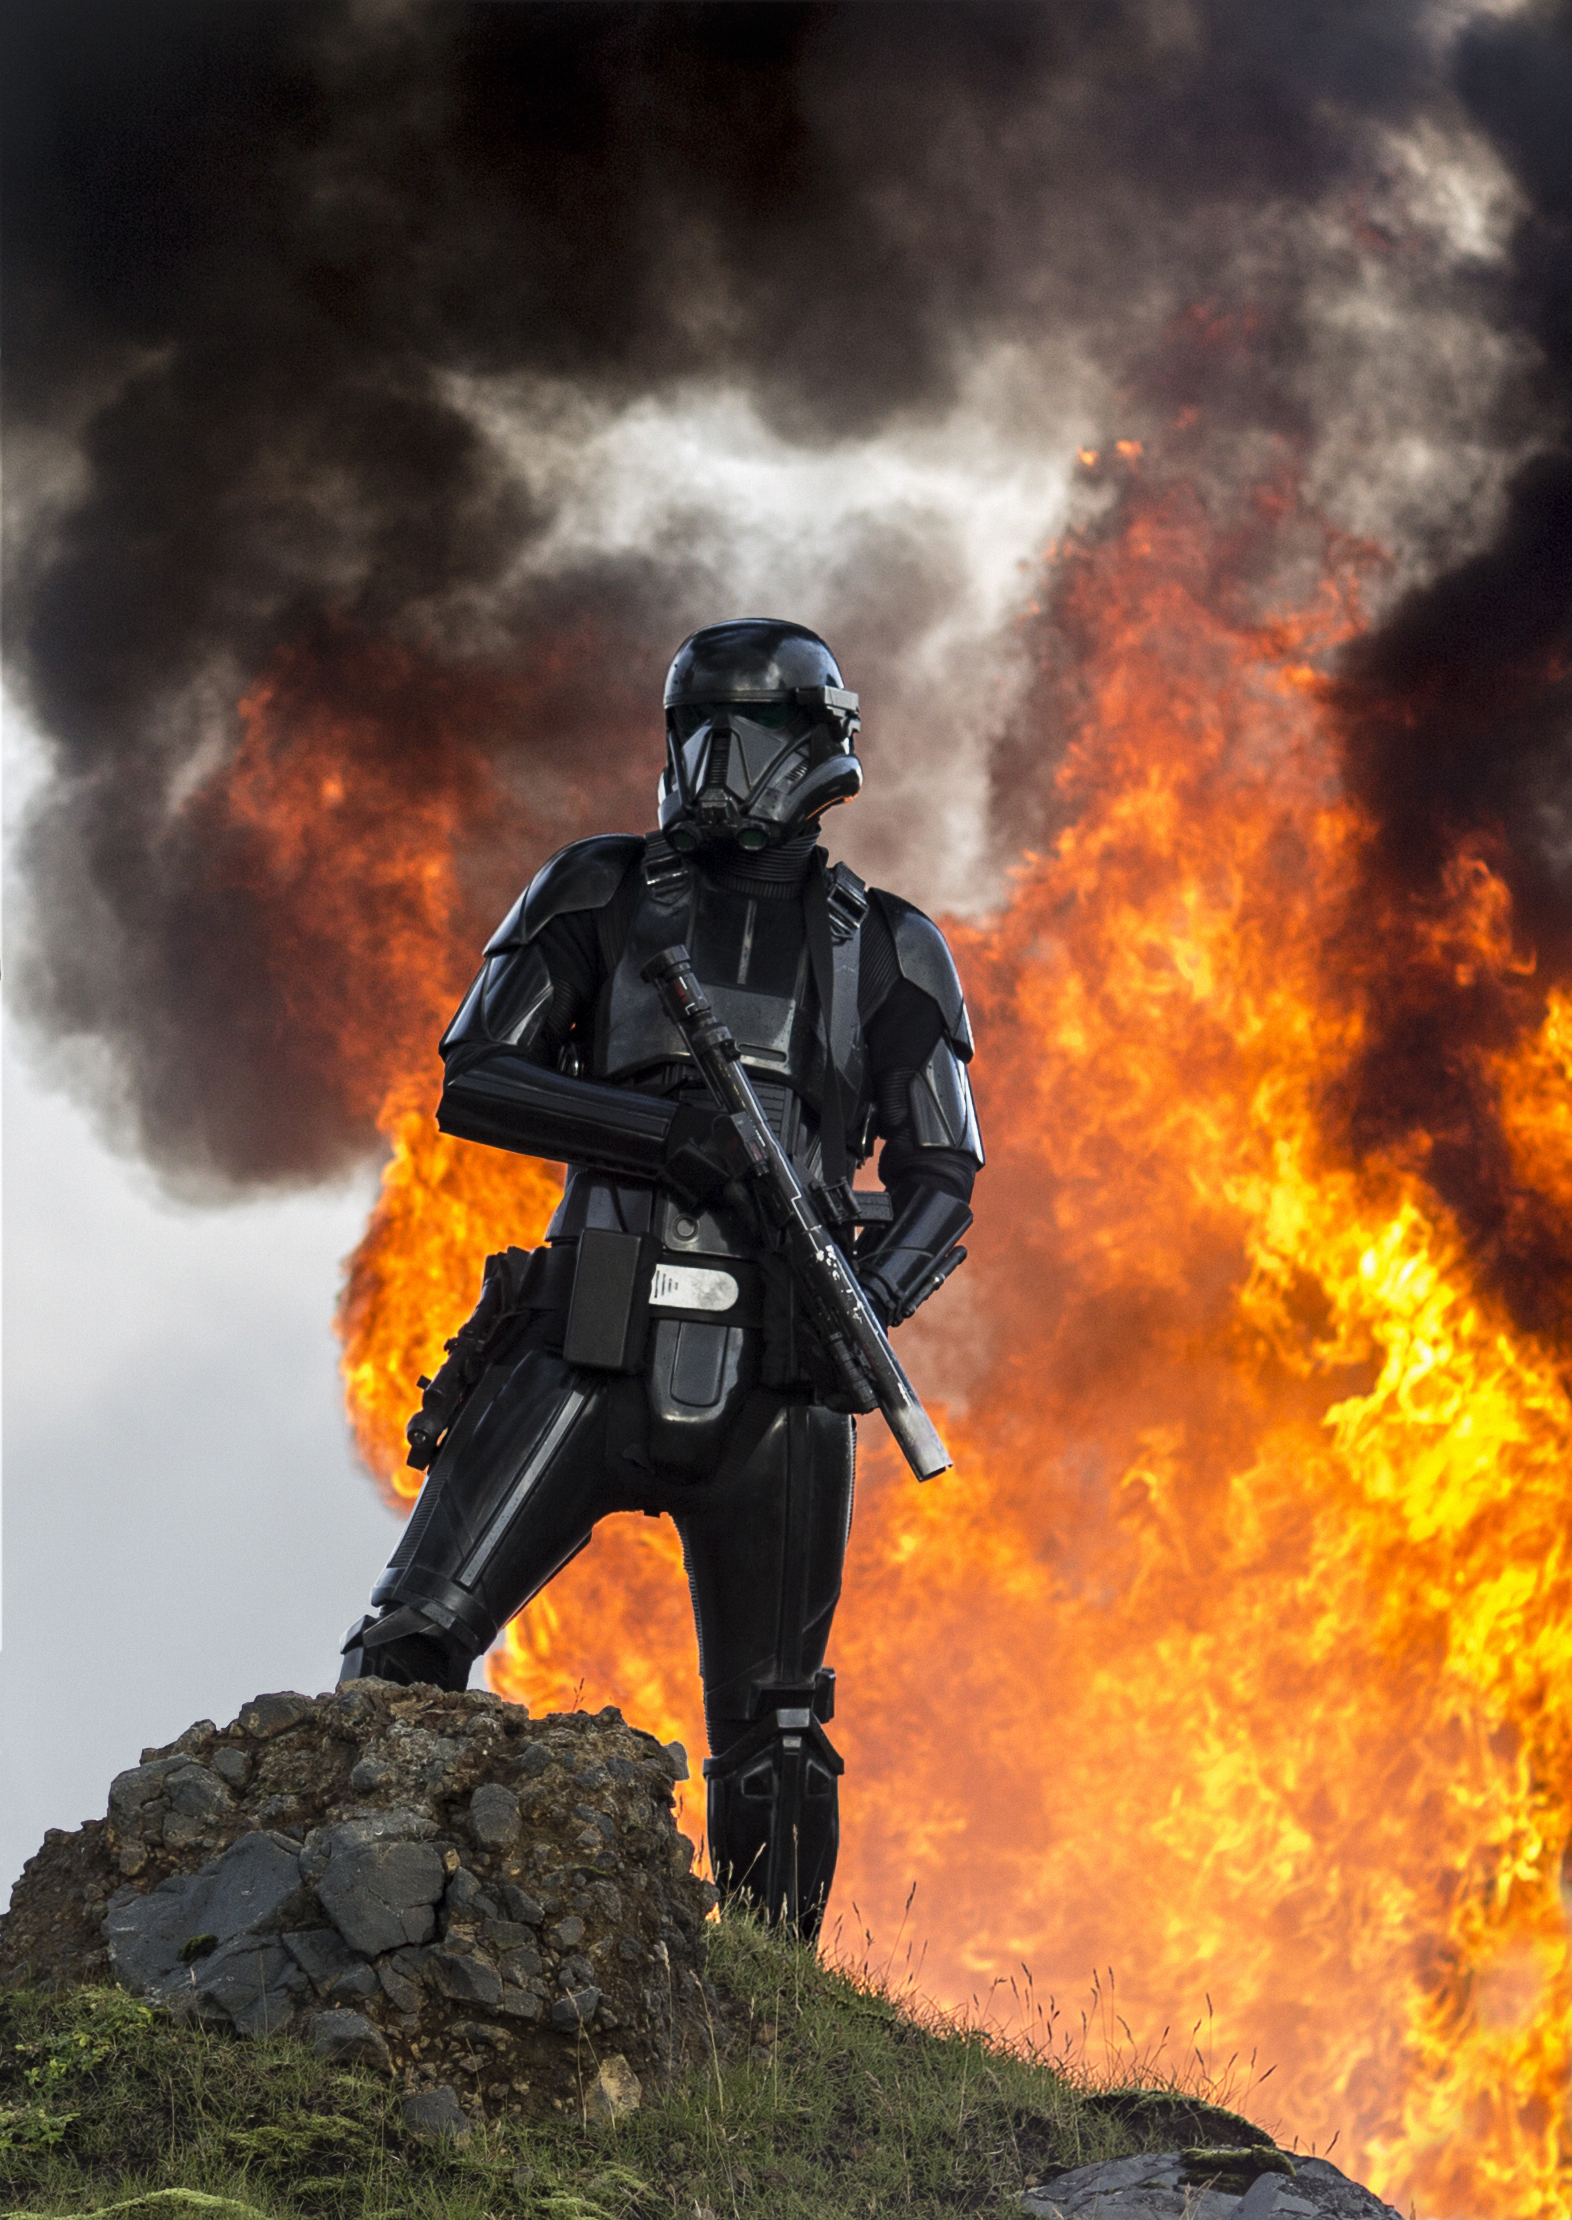 Star Wars Rogue One - fire